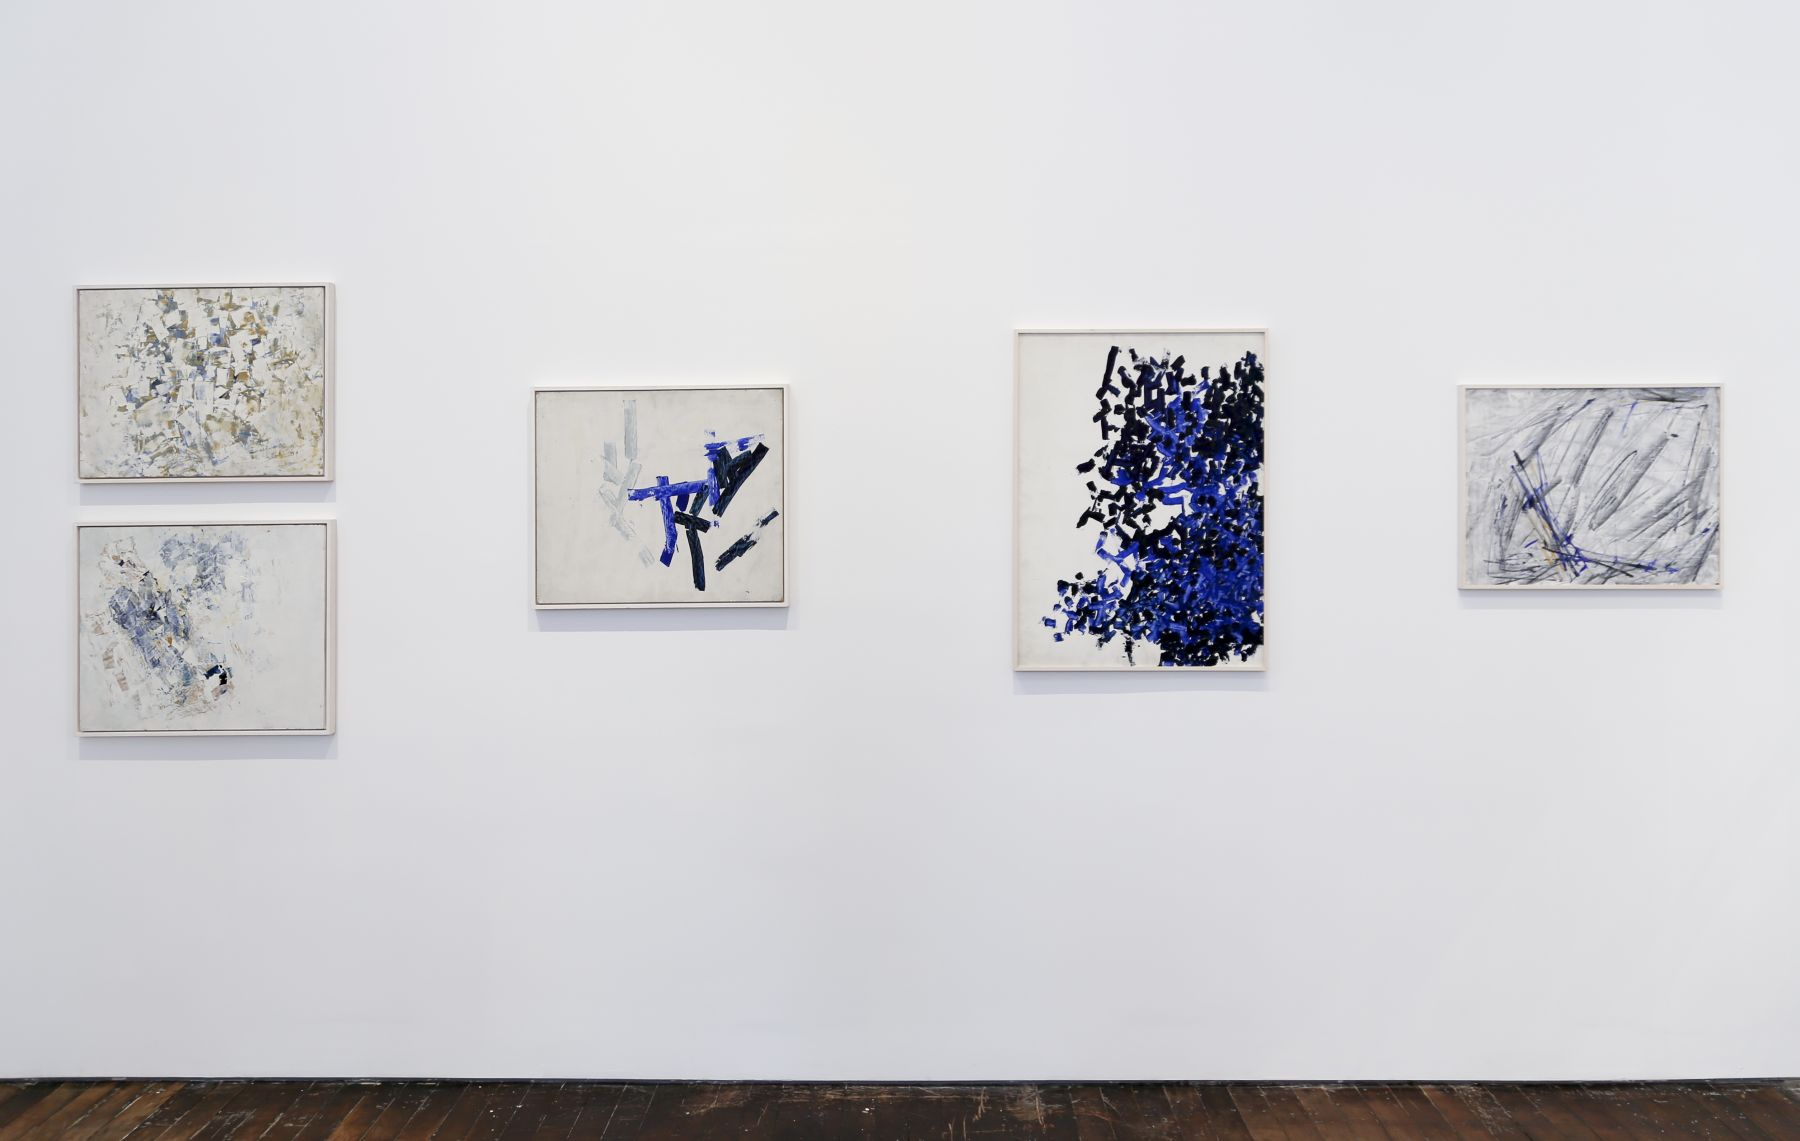 Charlotte Posenenske: Early Works – installation view 2